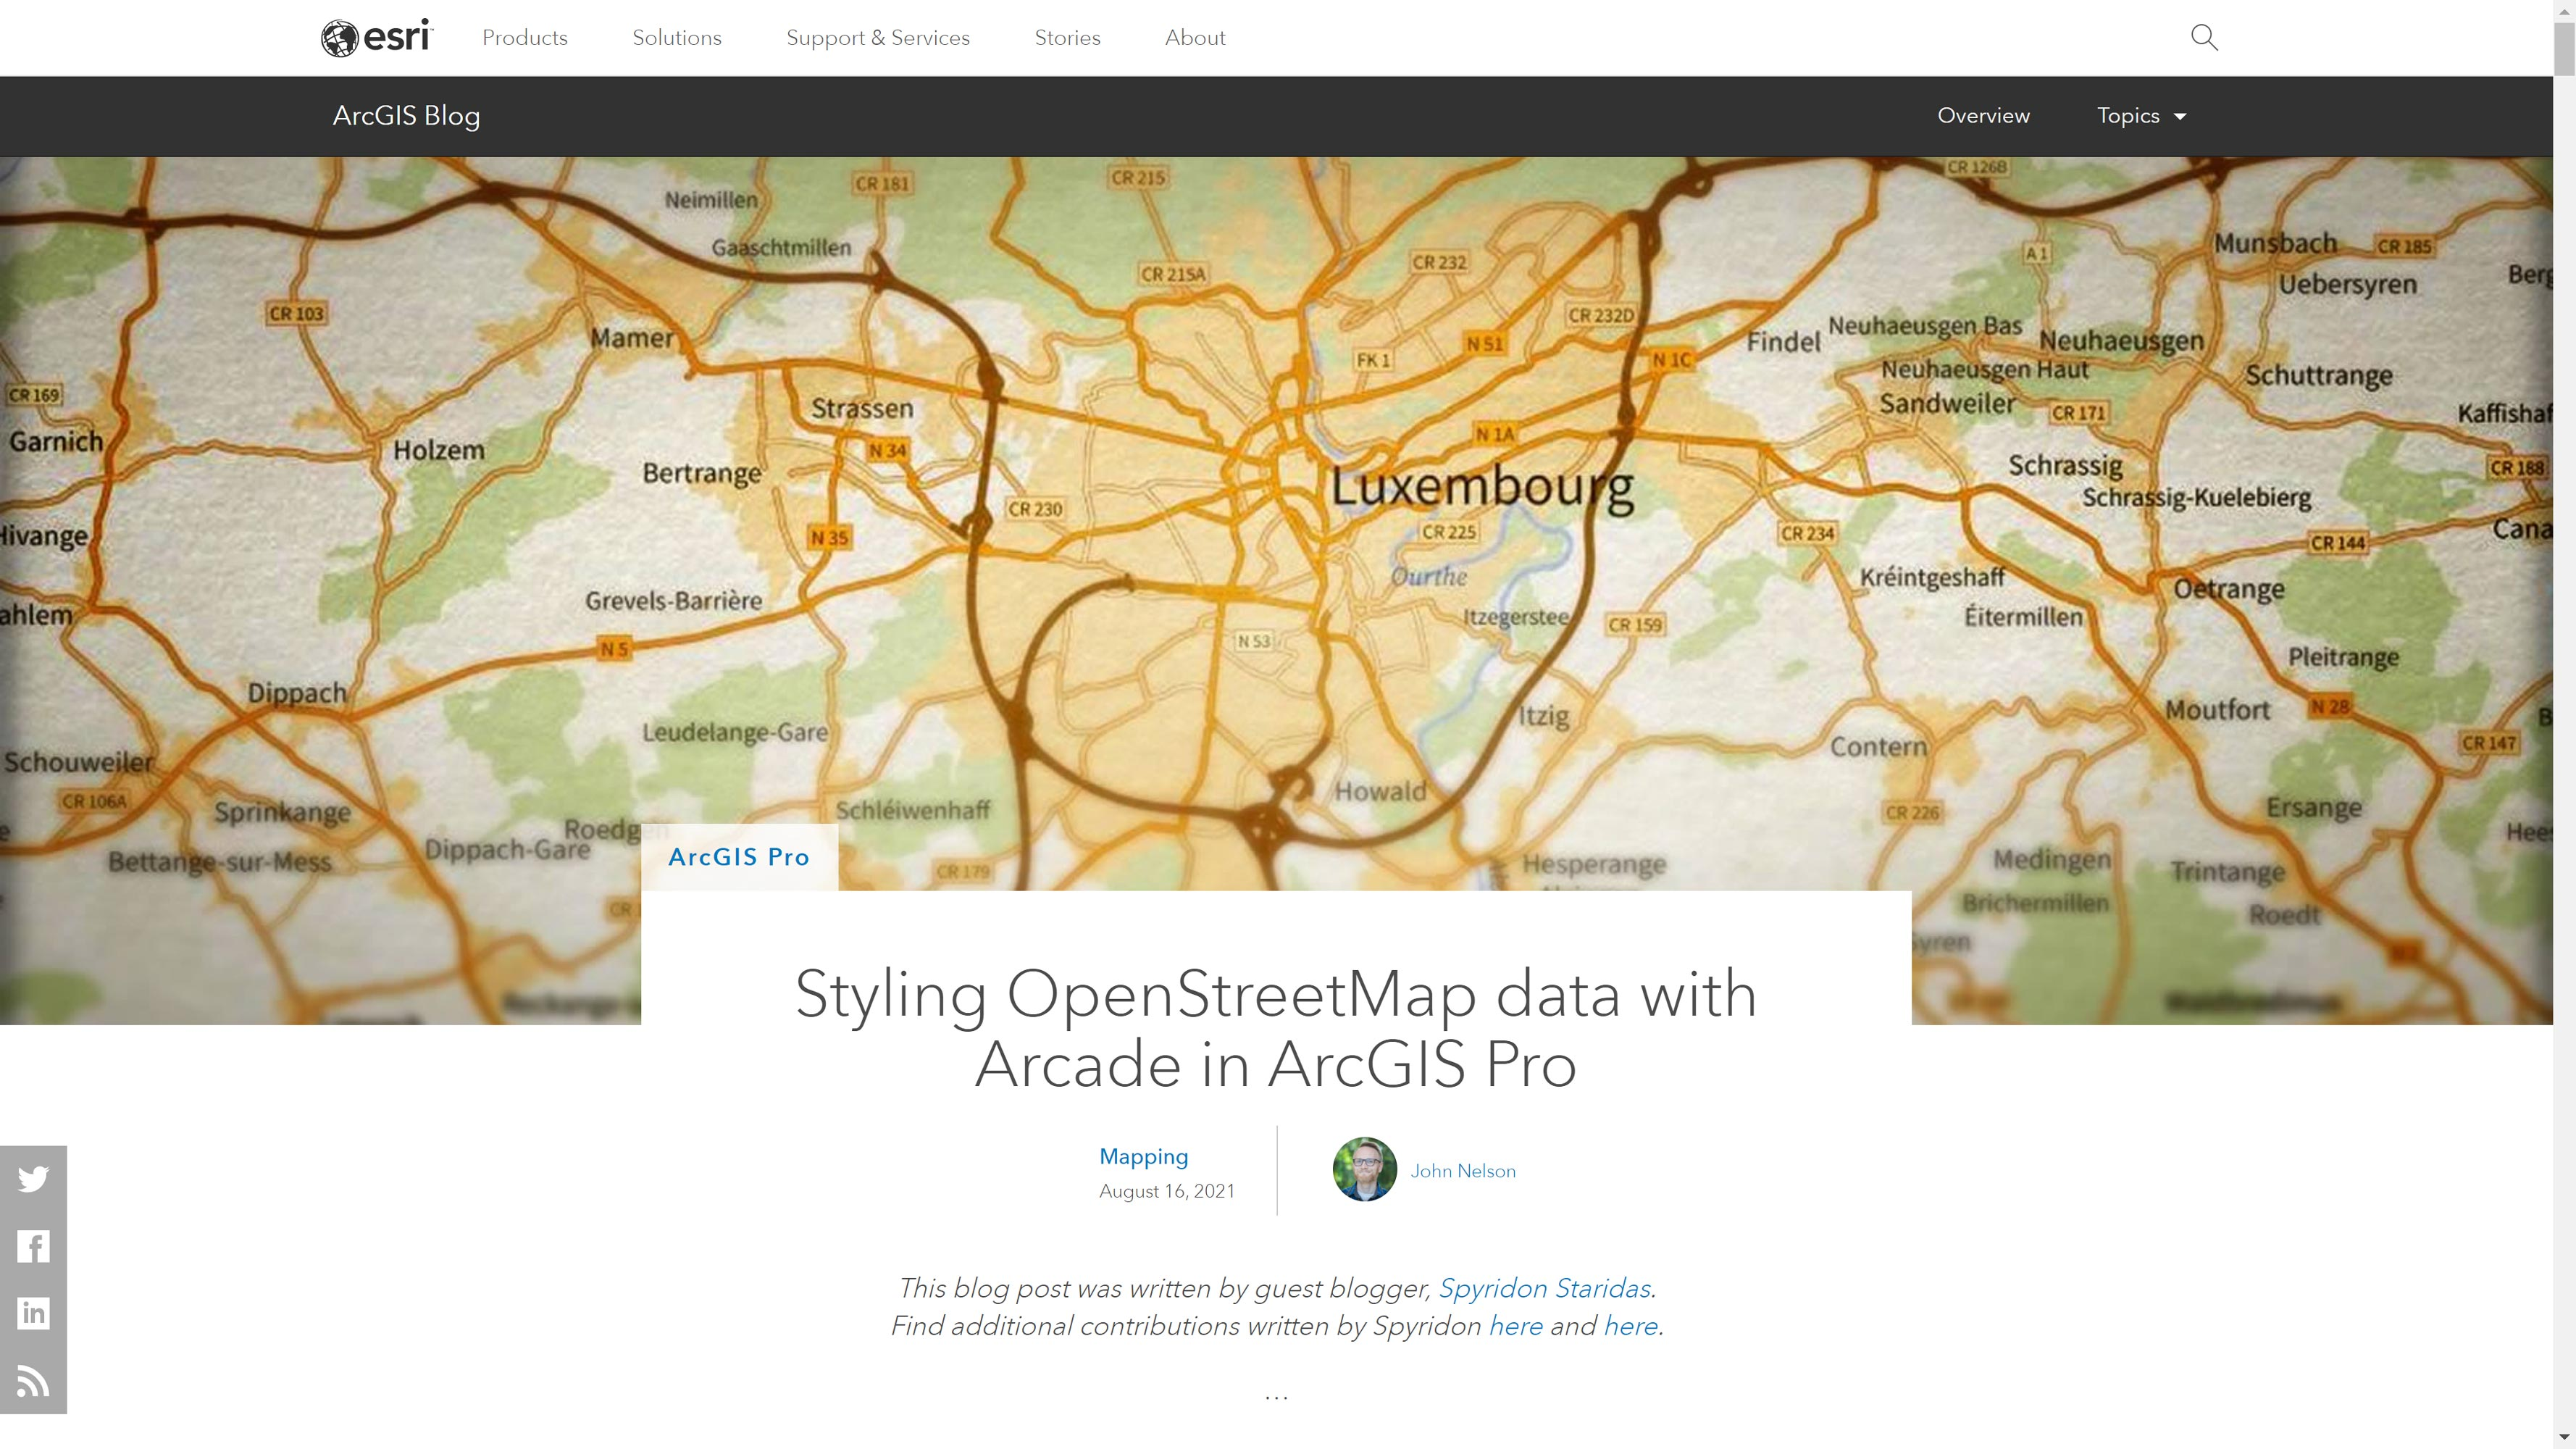 Styling OpenStreetMap data with Arcade in ArcGIS Pro